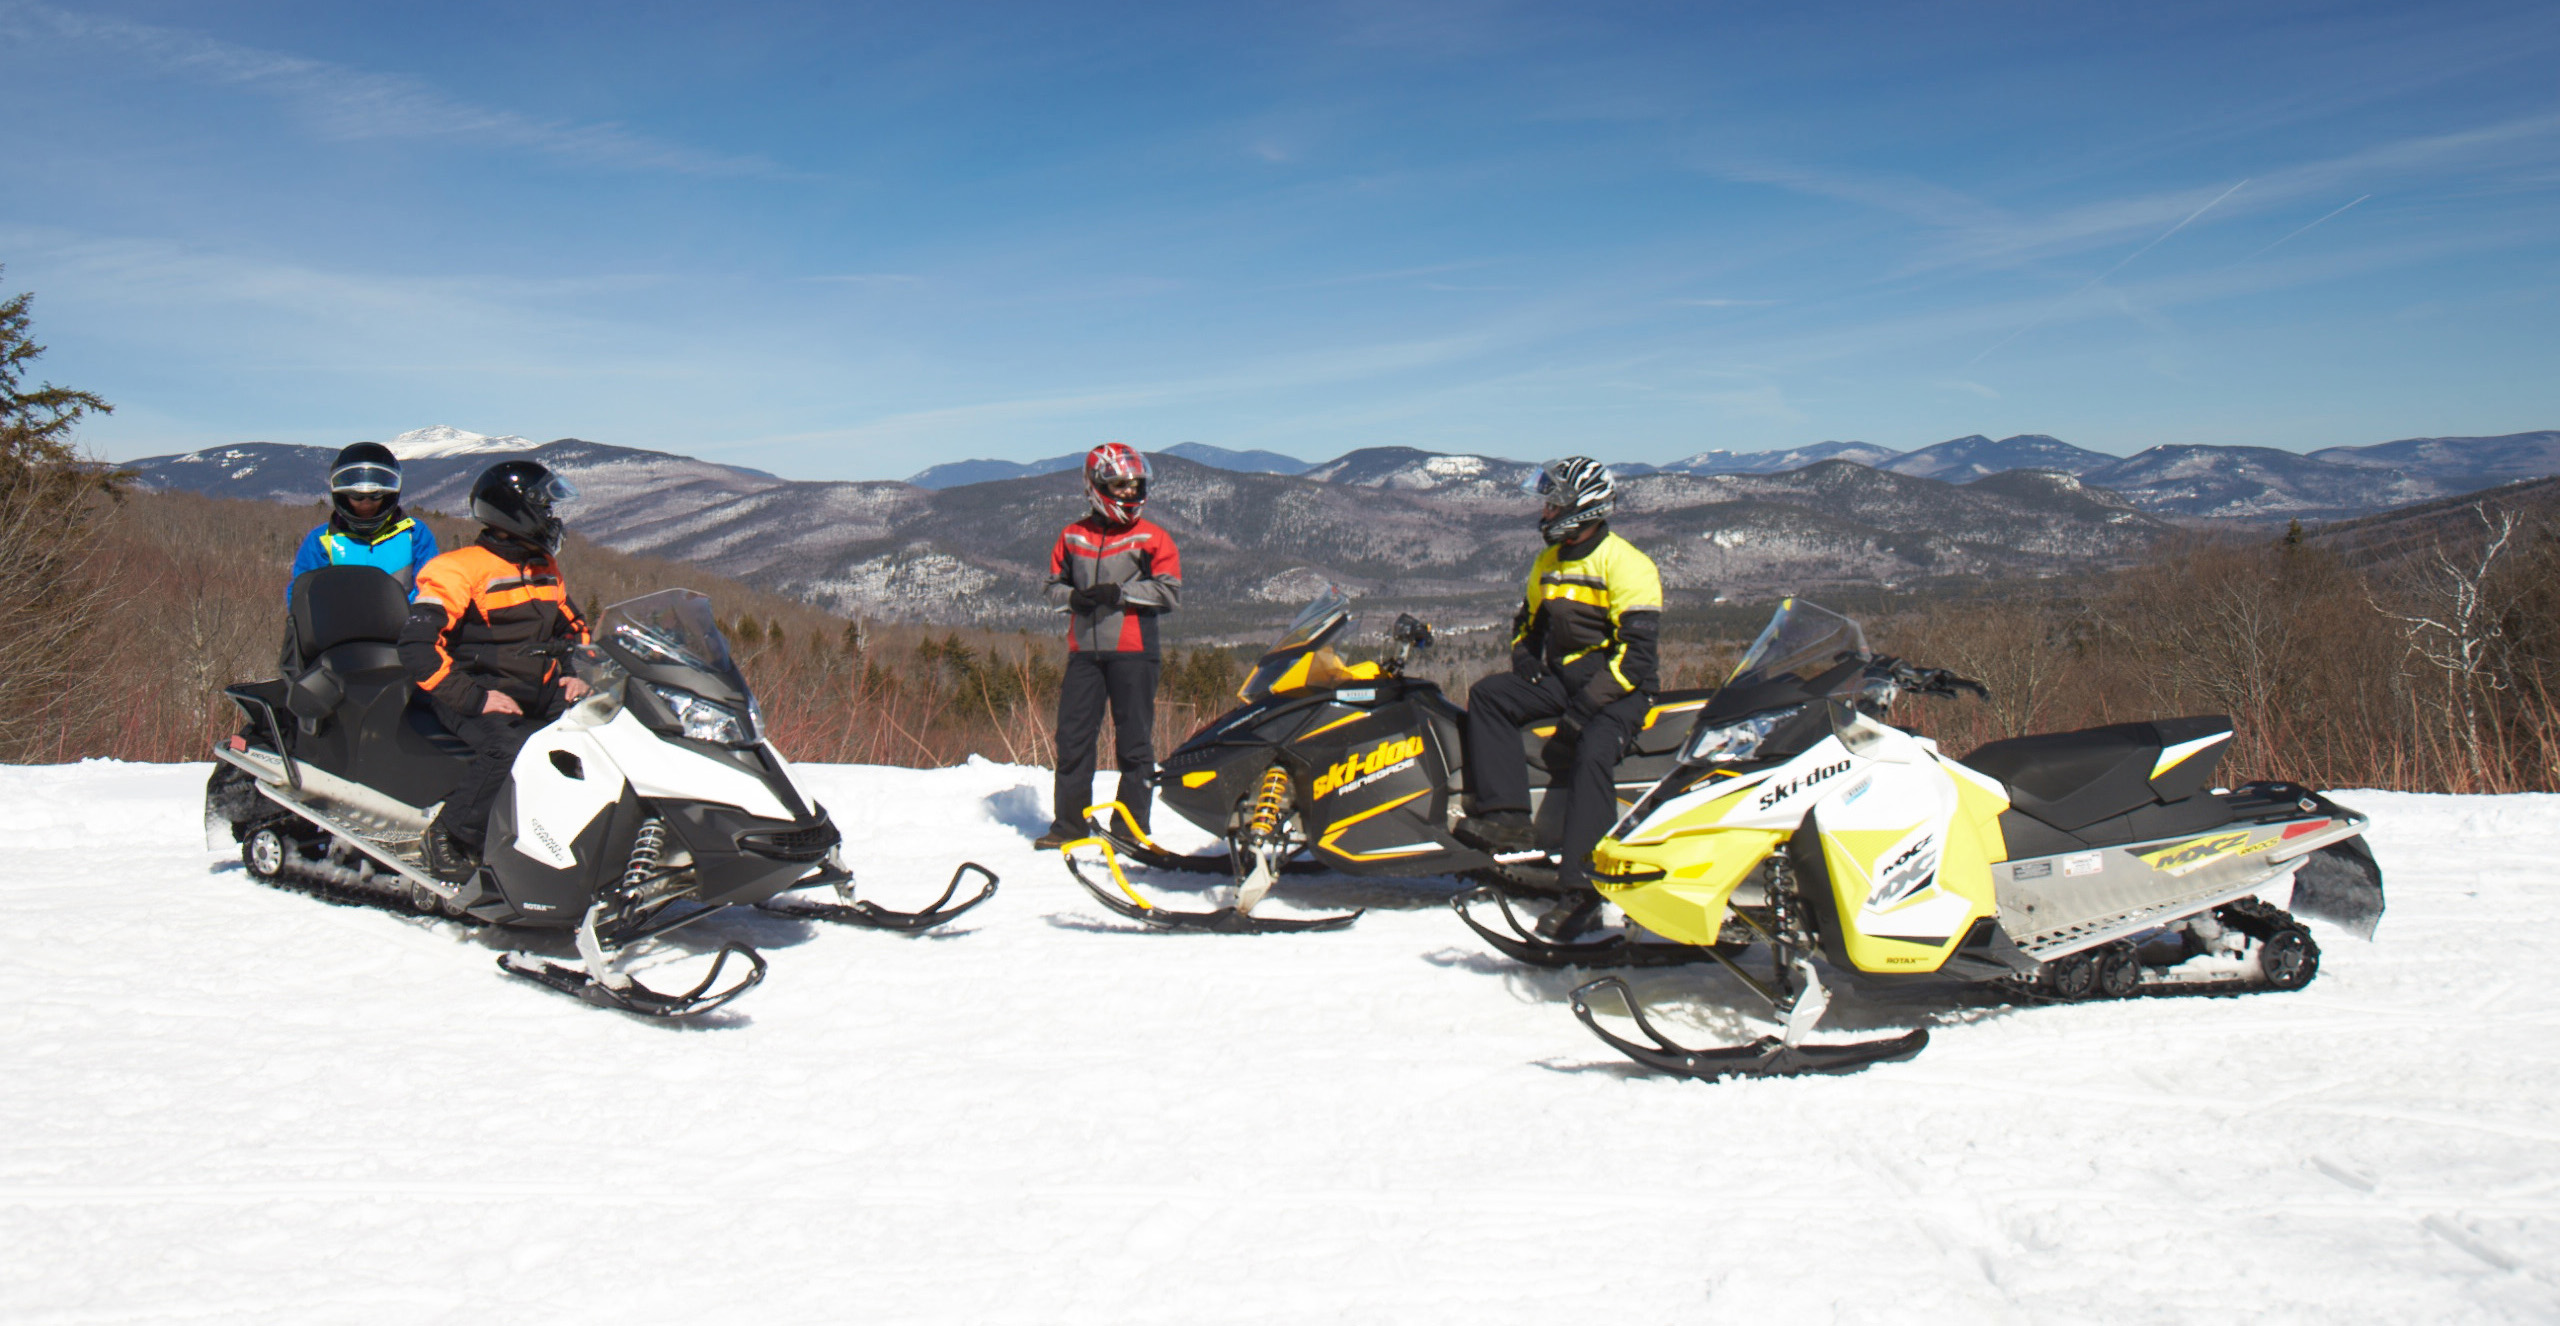 Snowmobilers taking in the views